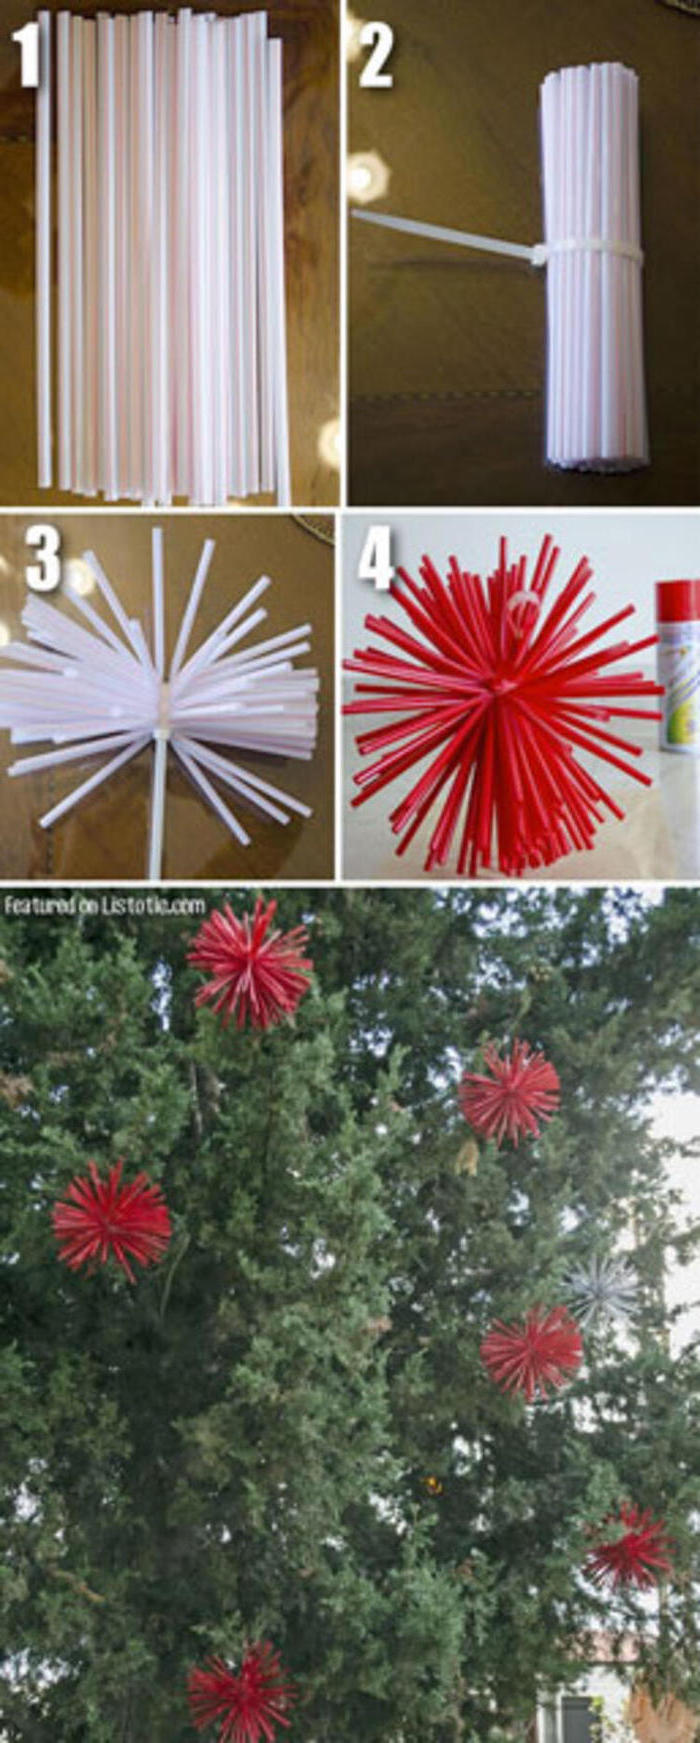 photo collage of step by step diy tutorial, grinch outdoor christmas decorations, tree ornaments made of plastic straws